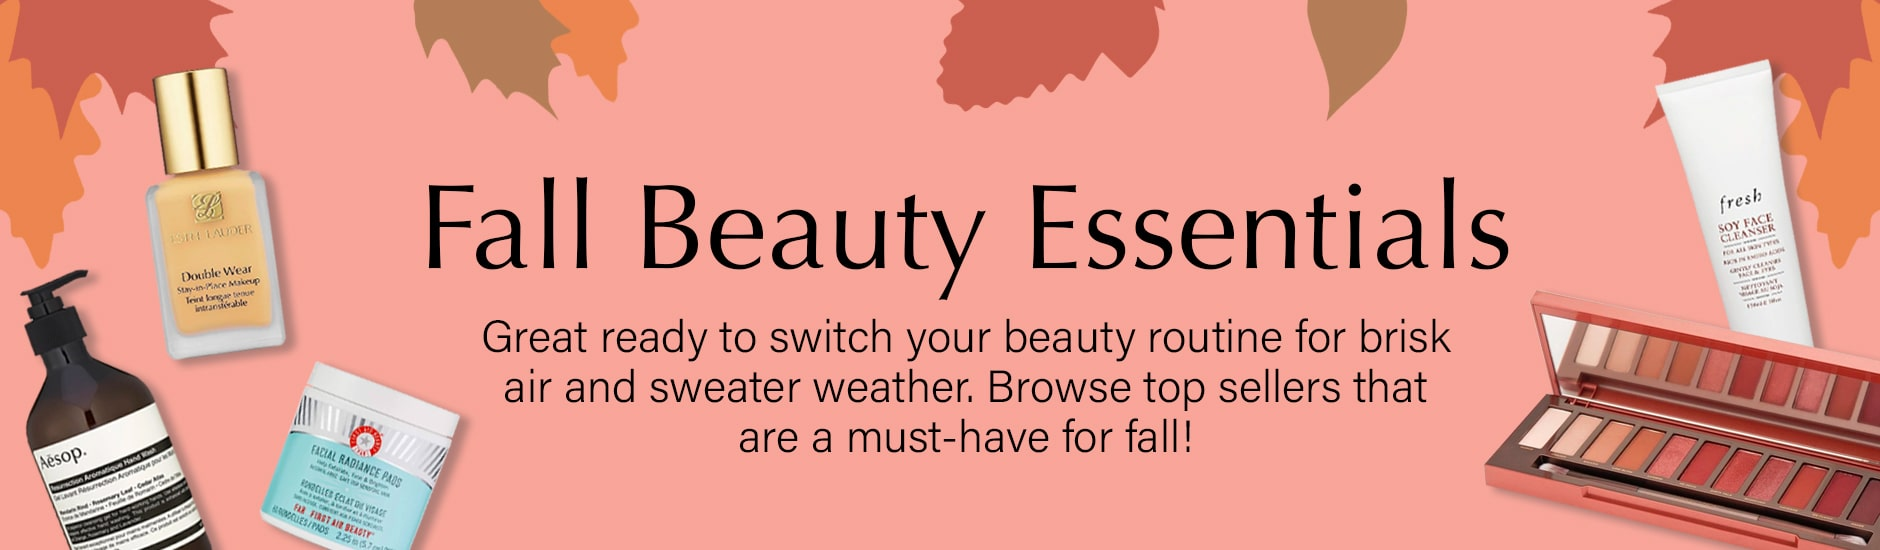 Kalista Beauty Fall Beauty Essentials Collection Banner